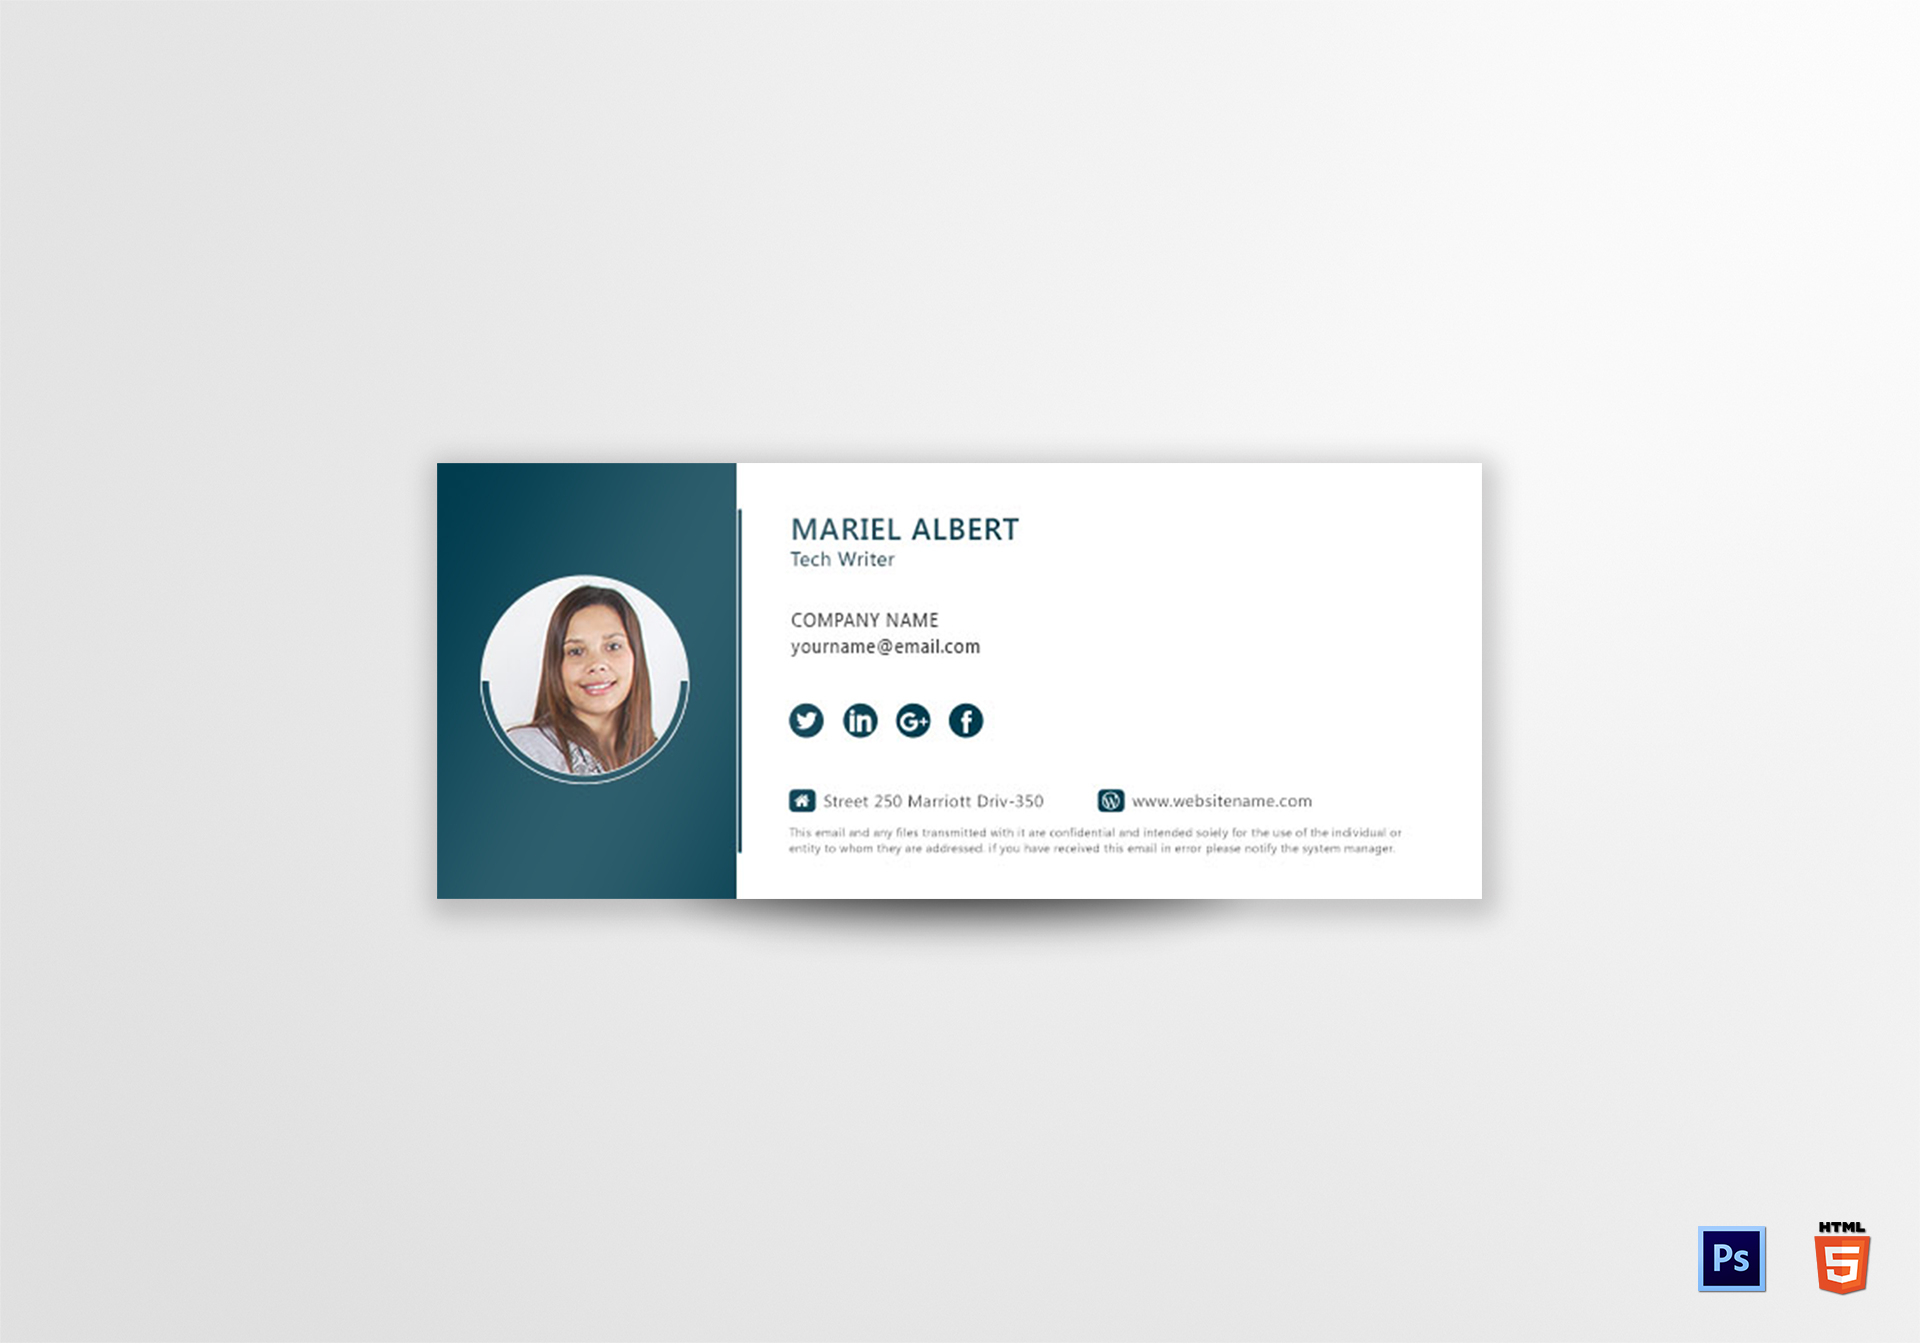 Technical Writer Email Signature Design Template In Psd Html